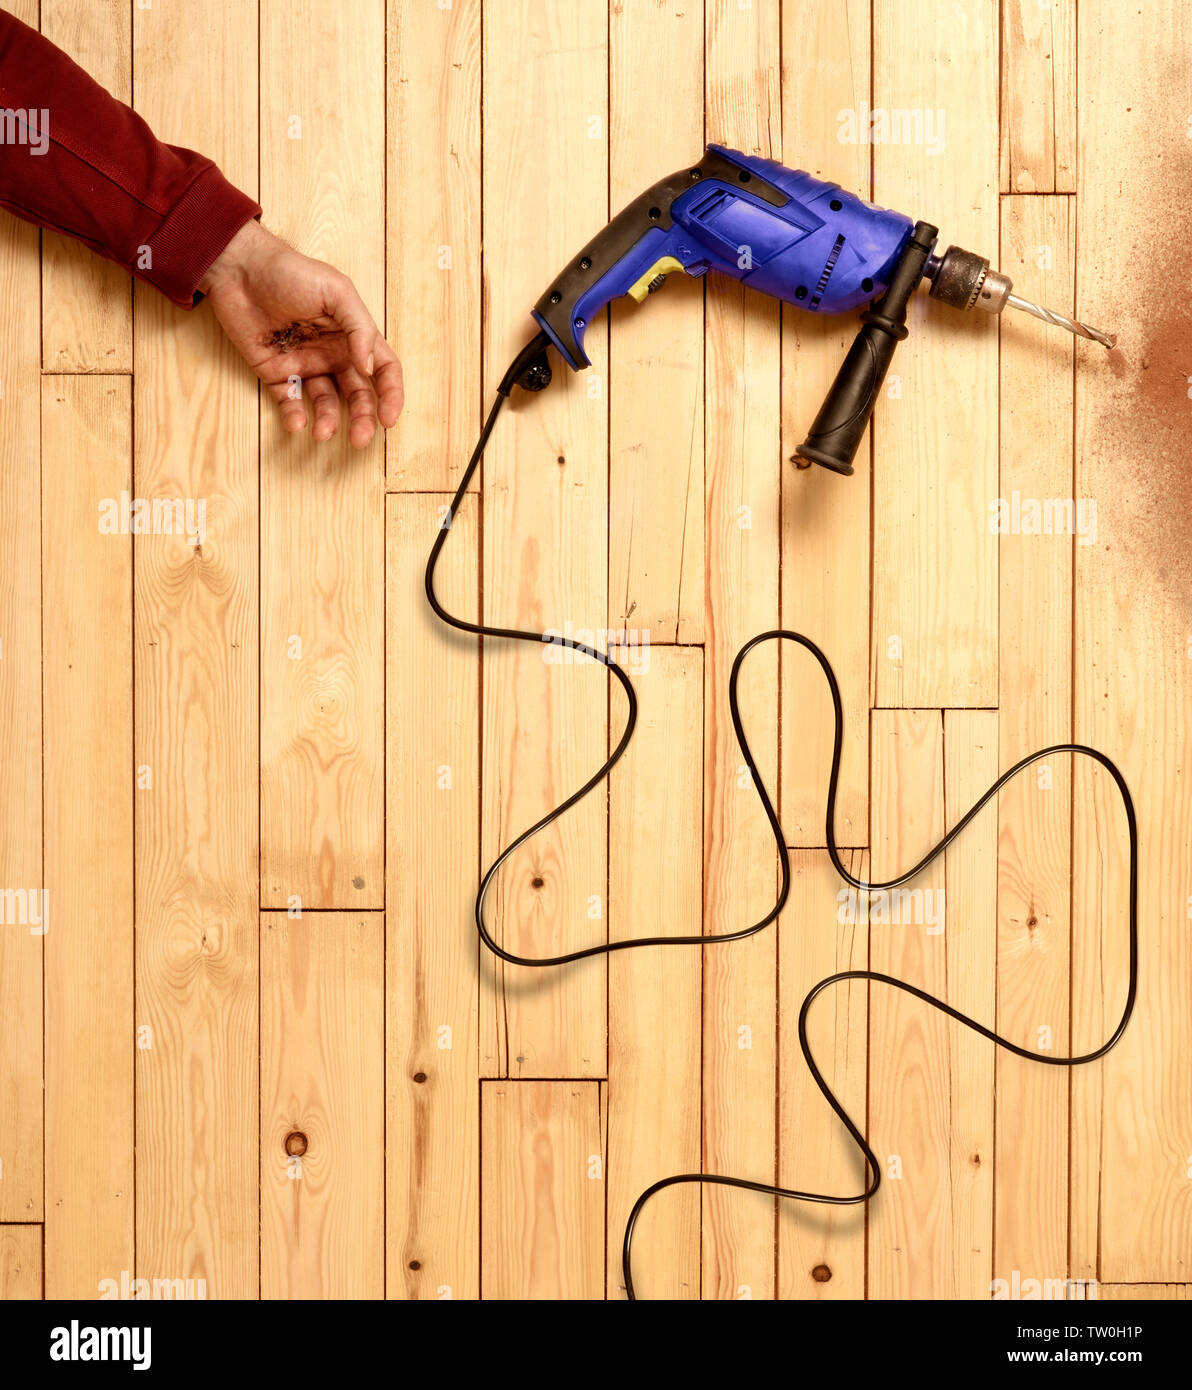 Tradesman or builder suffering an electrical accident Stock Photo